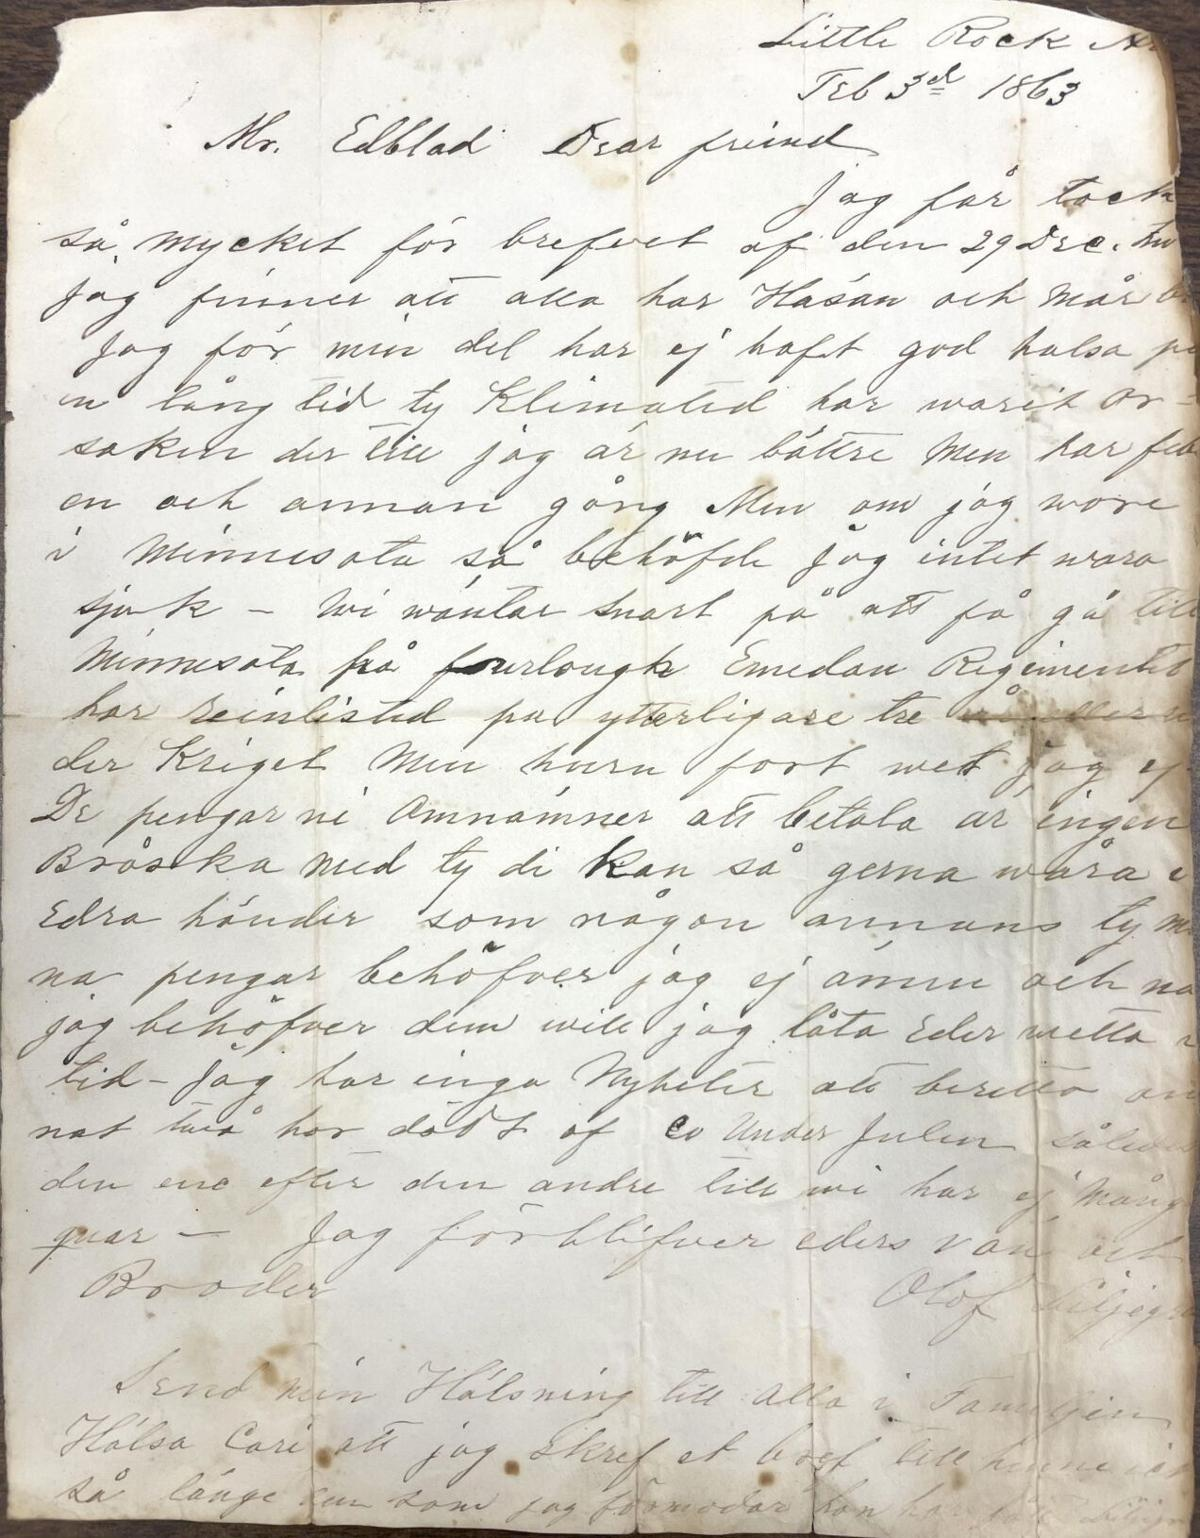 Repeating History: Letters from an area Civil War soldier